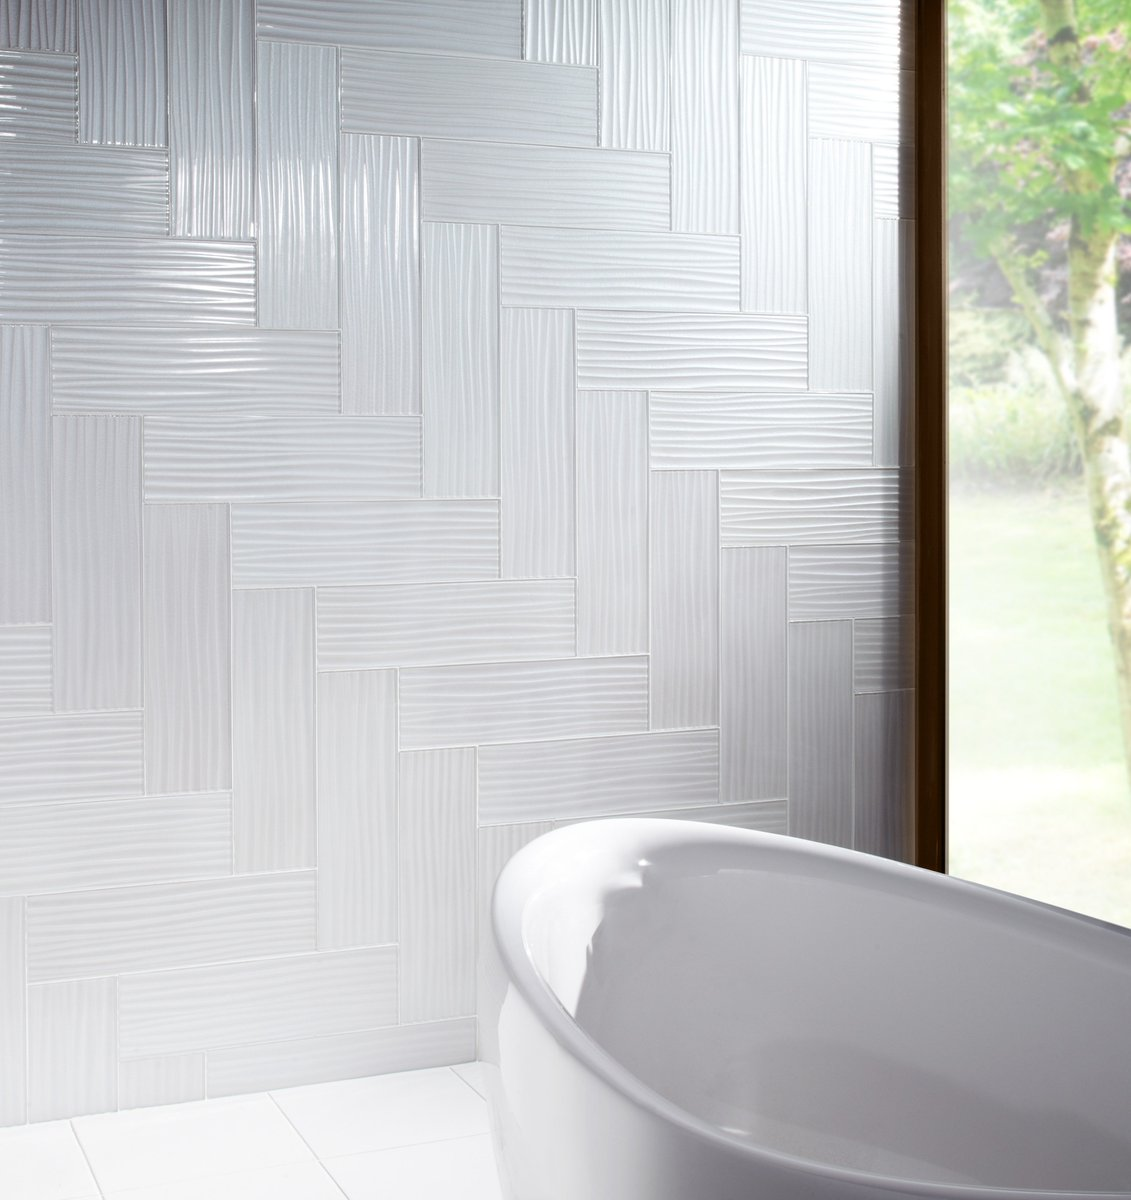 take a look at our stunning impact glass range available as a tile or splashback u0026 made in our devon factory tiles glasstiles interiors